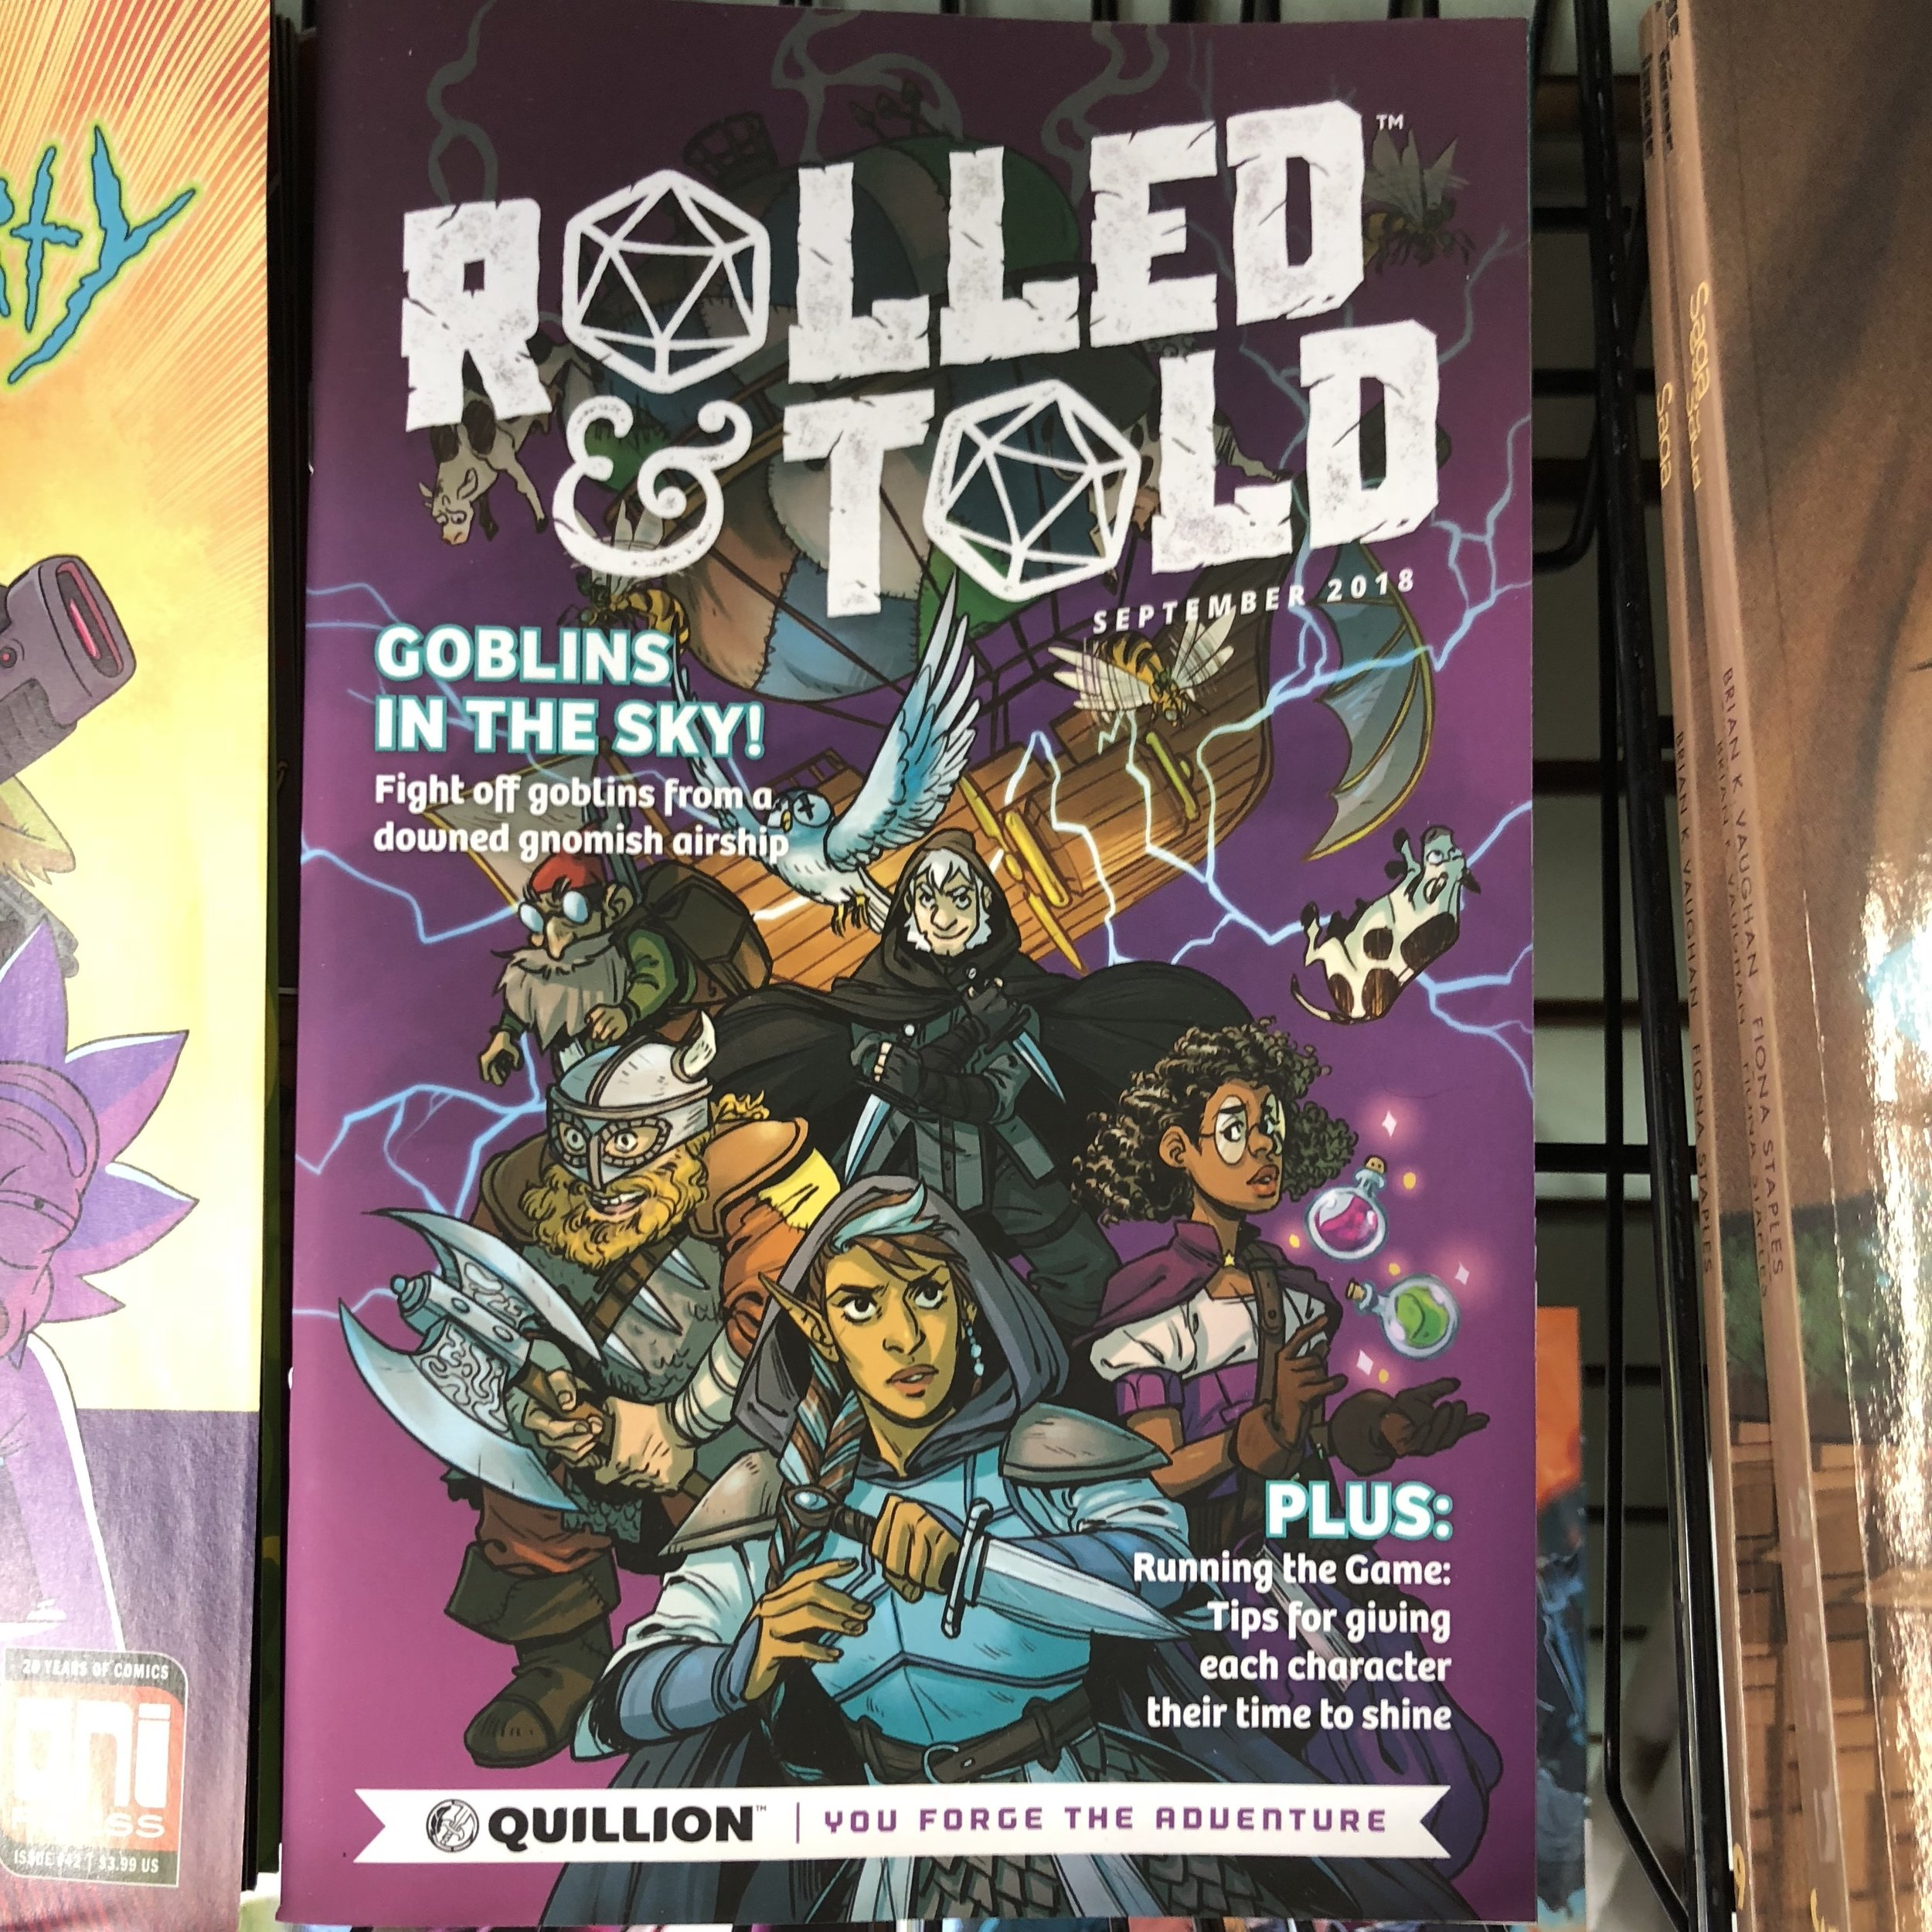 ROLLED & TOLD #1 - A mix of comic book and D&D supplement, this is out! I have preview books still if you want to get a taste, but this is gonna be big I think!